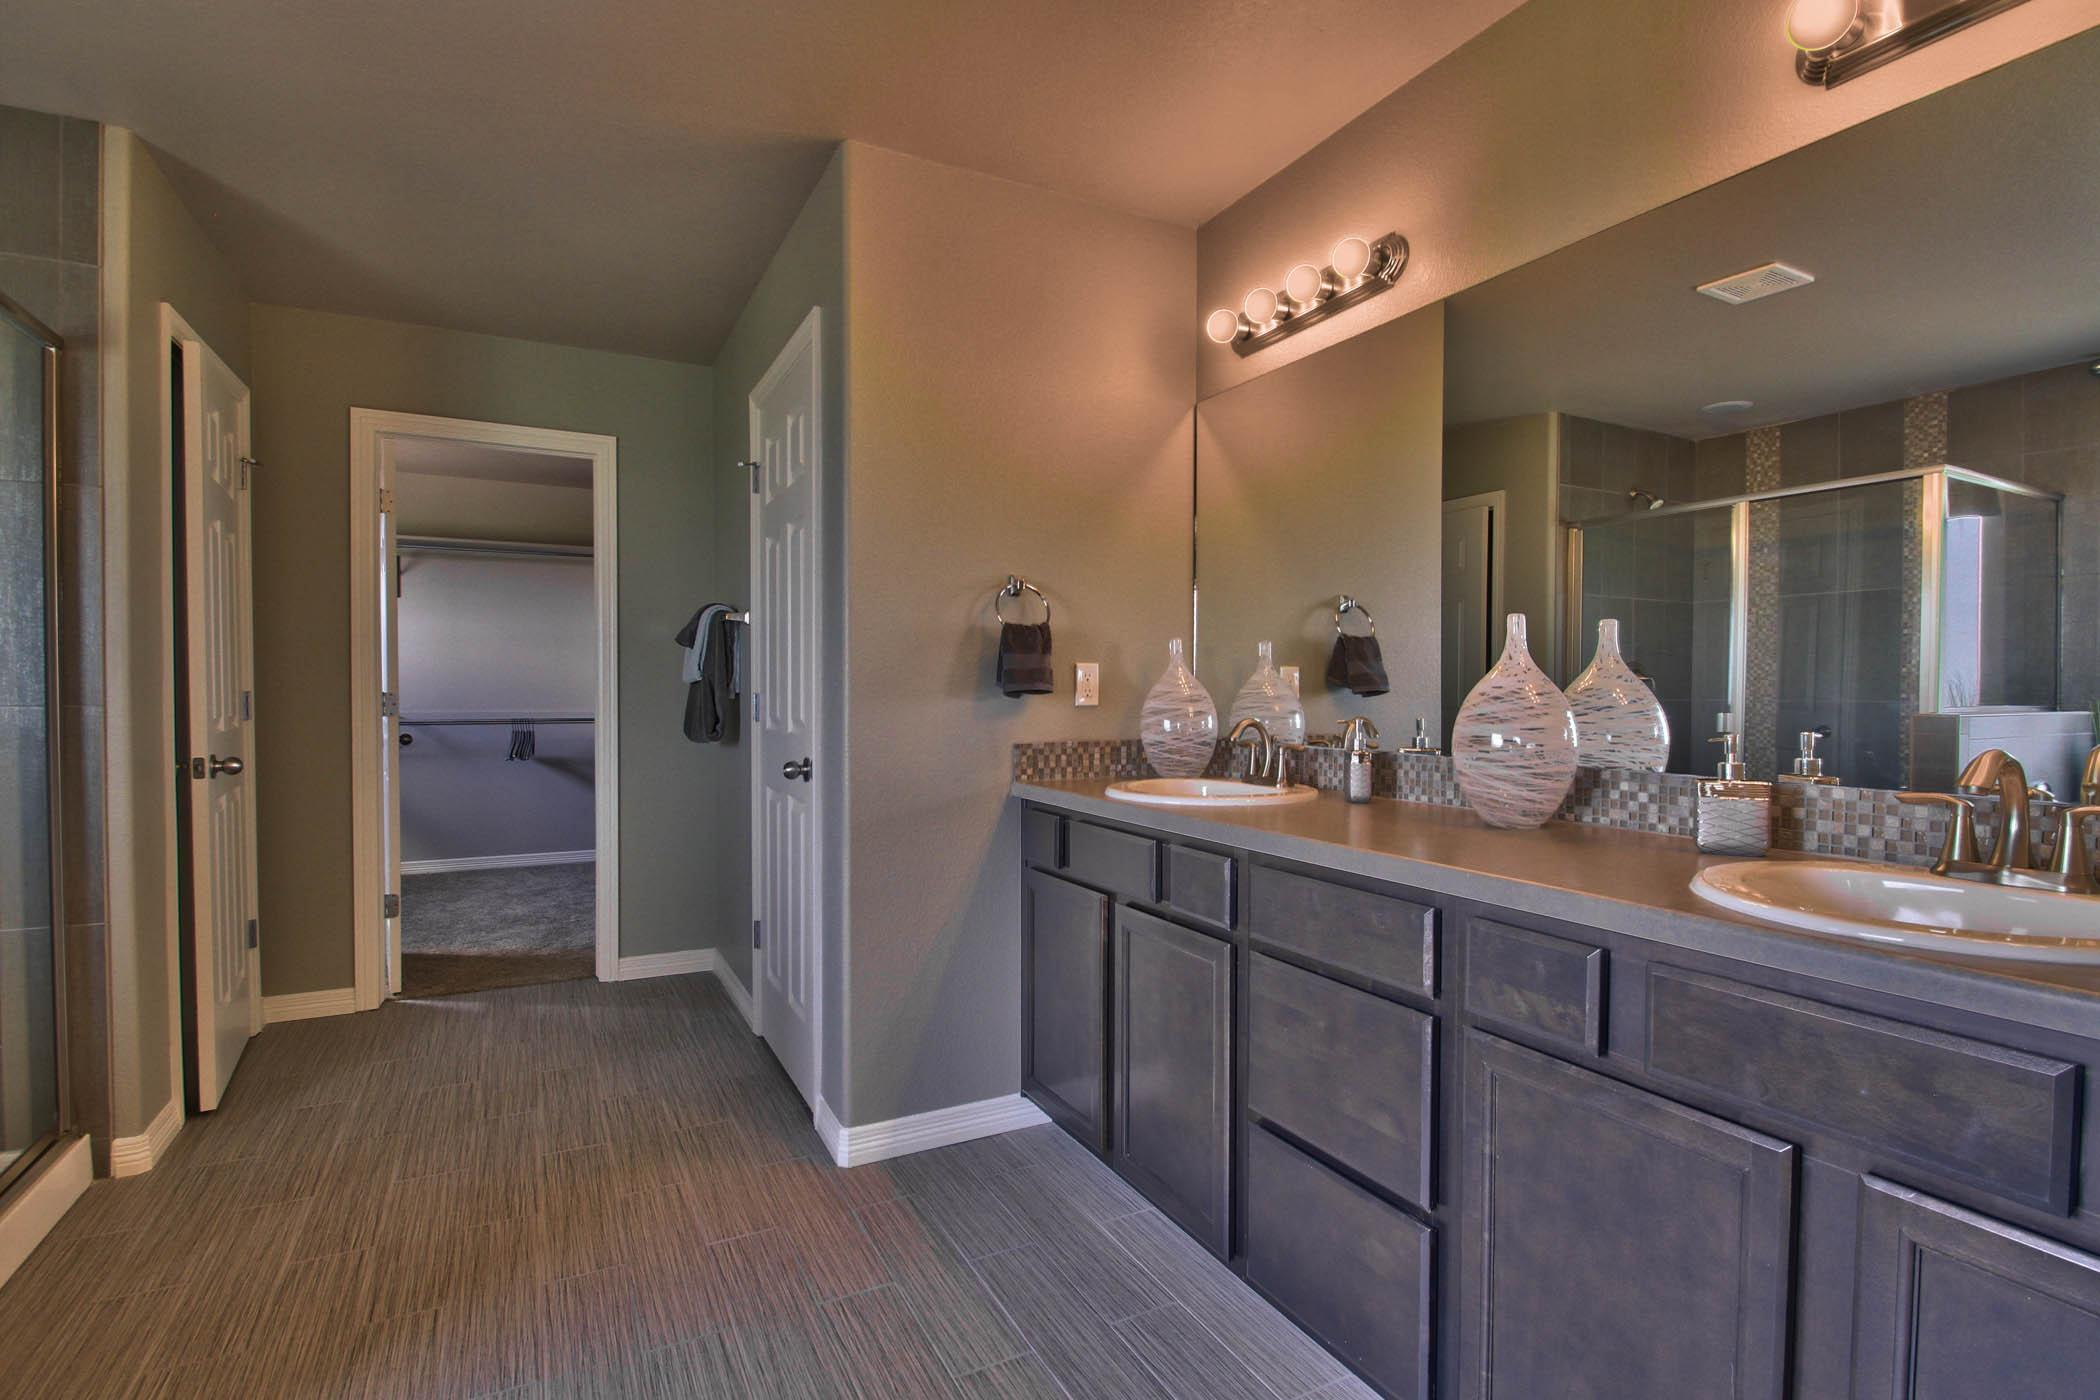 Bathroom featured in the Pikes Peak - Upper Level Master (Slab) By Reunion Homes